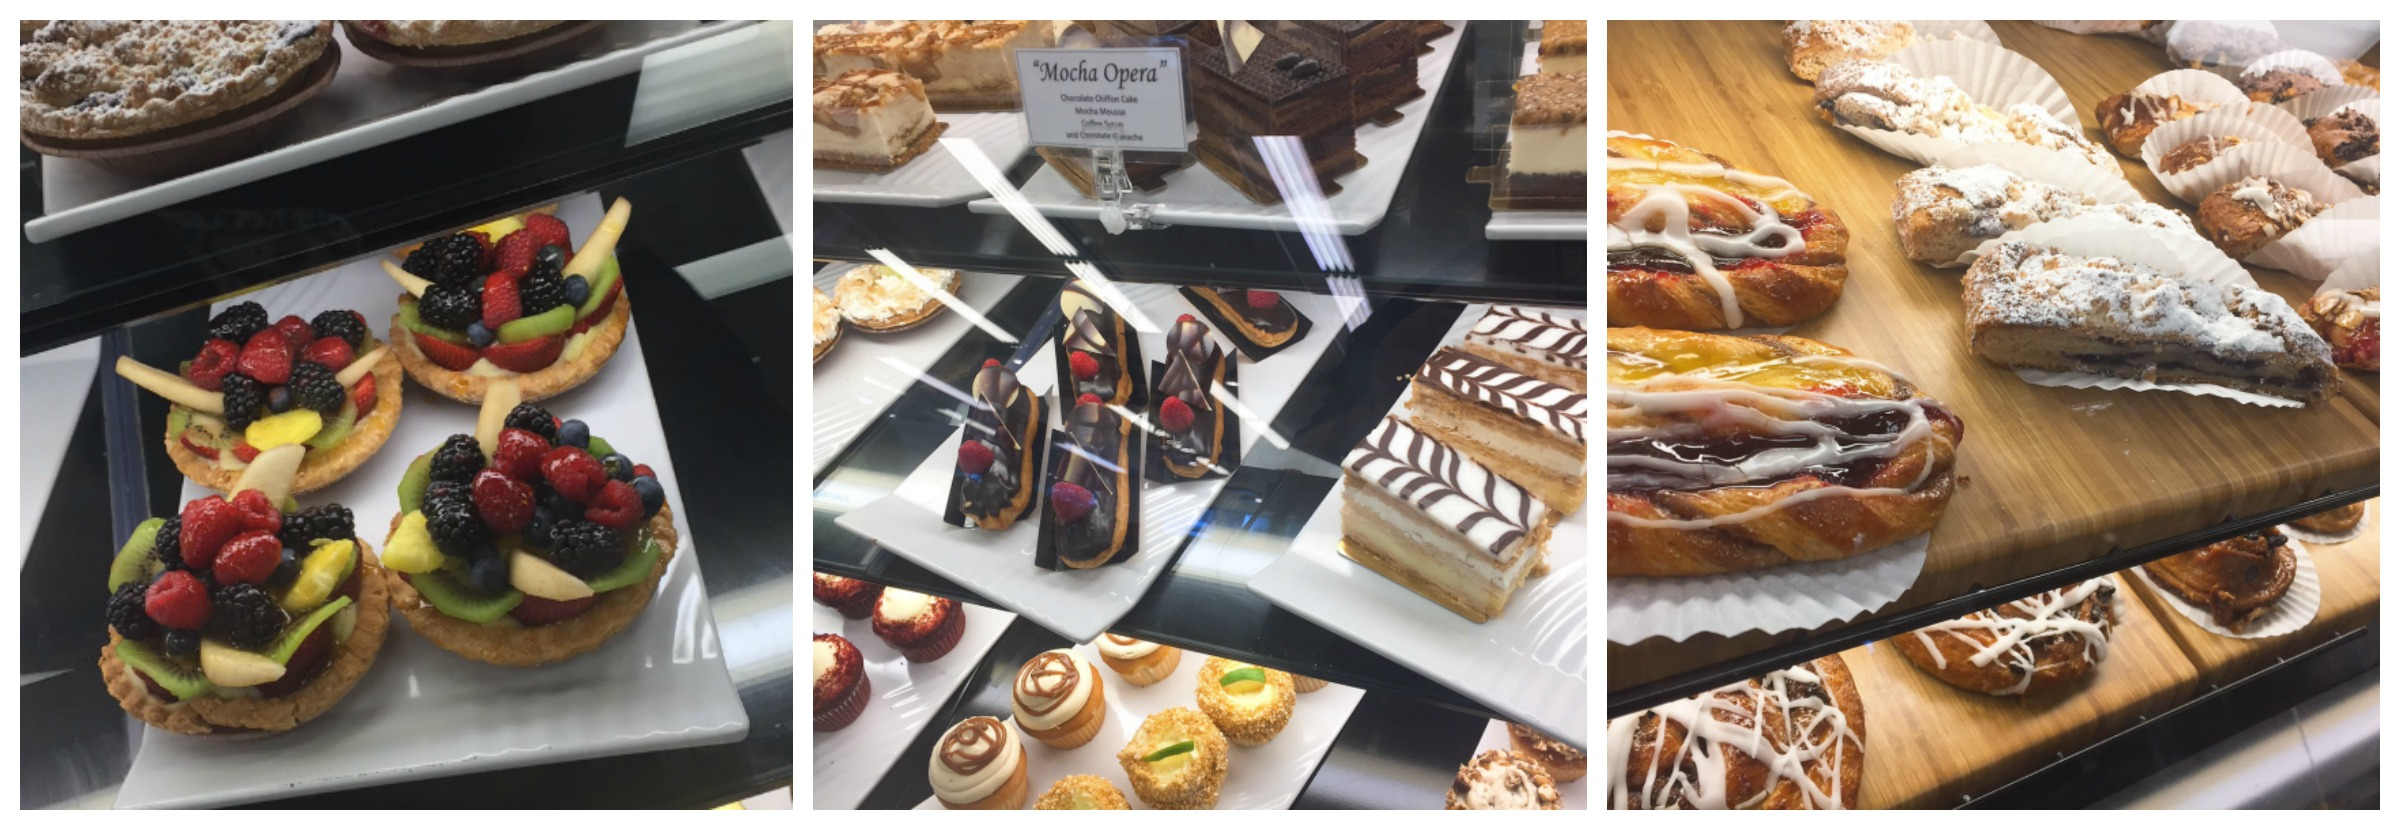 Epicure Market Miami Beach Dessert and Pastries